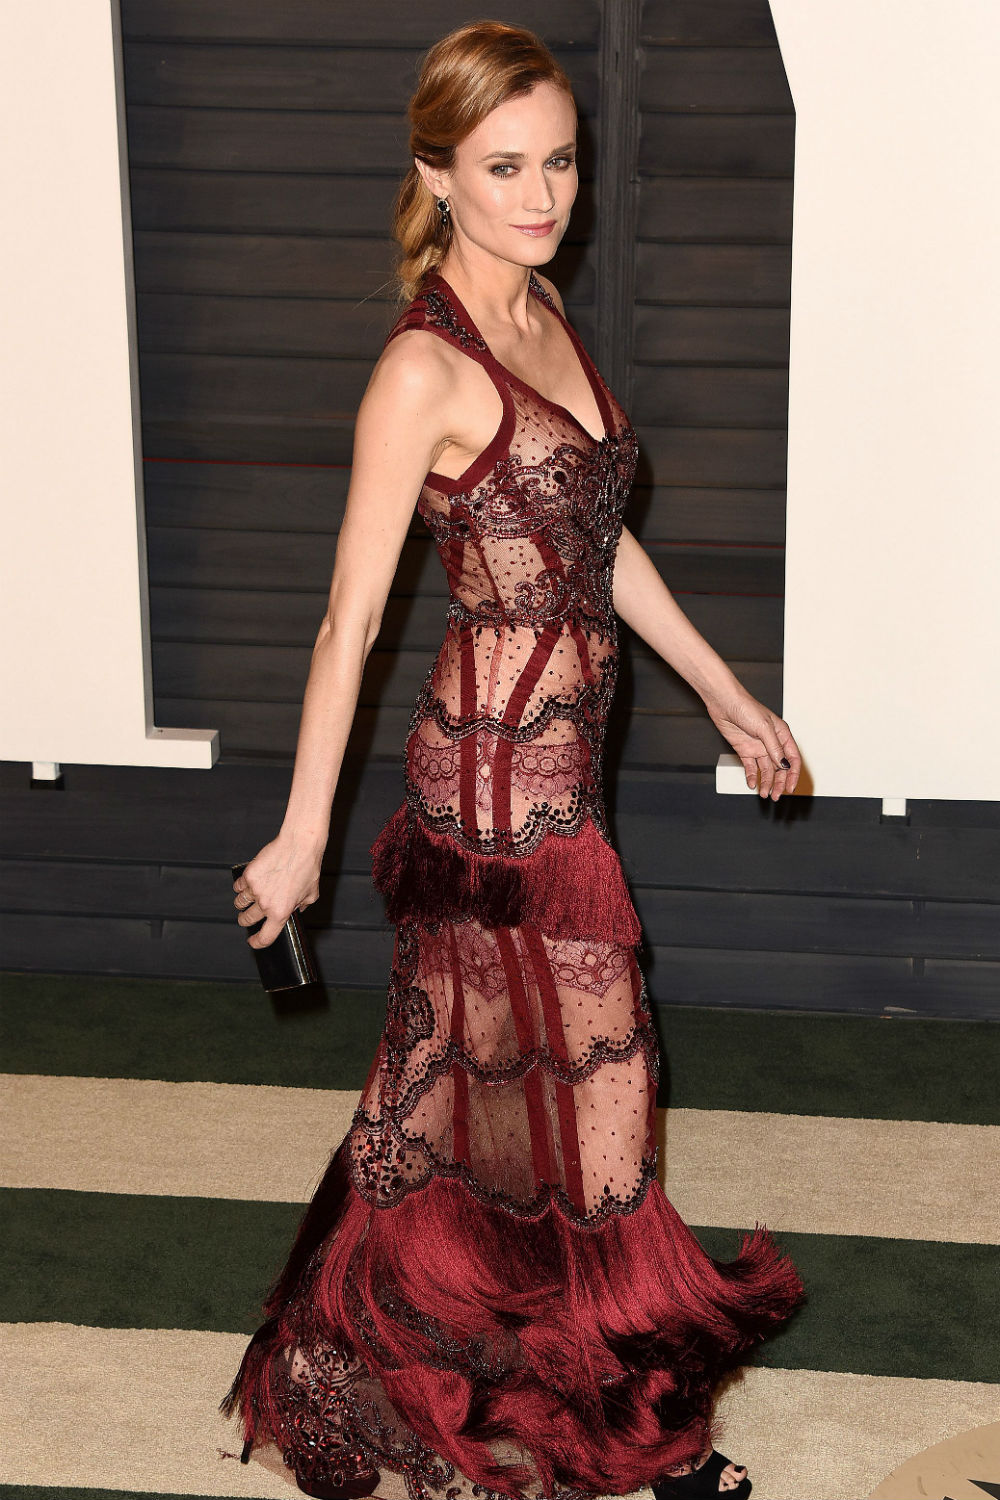 Naked Dresses: 15 Of The Boldest